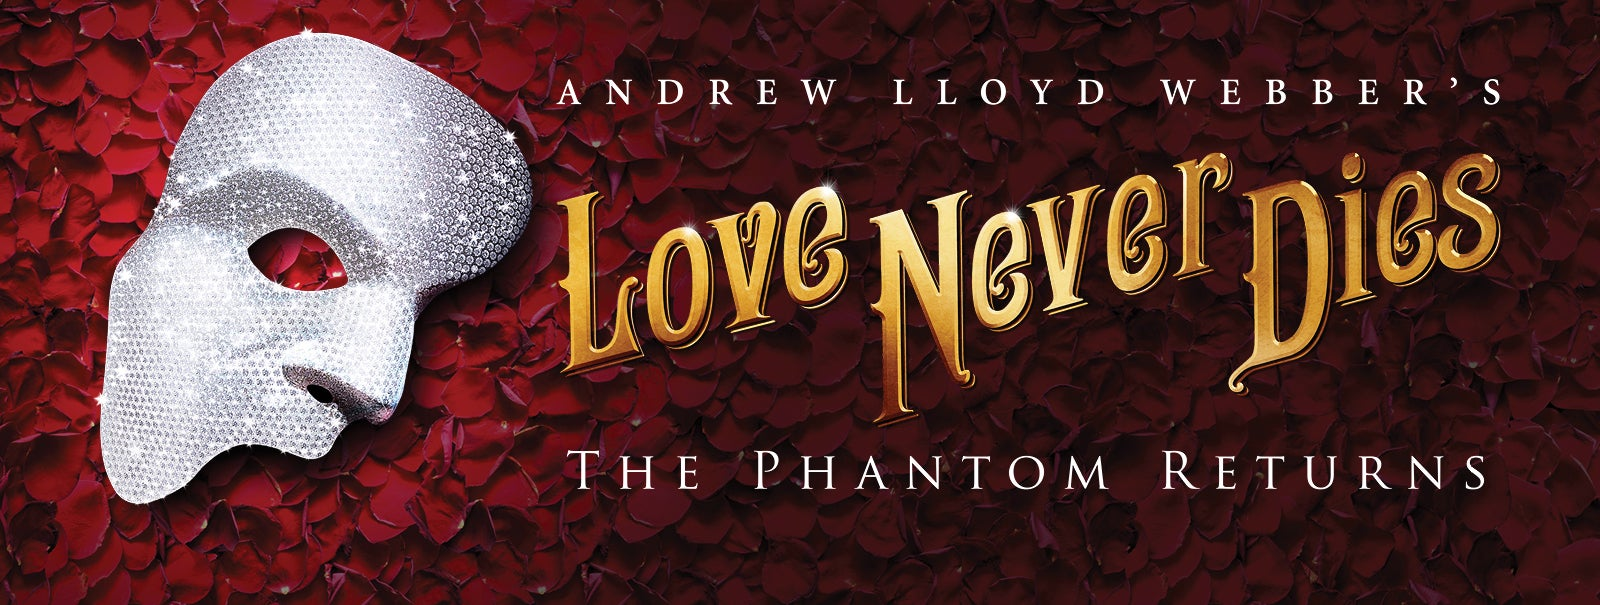 More Info - Love Never Dies